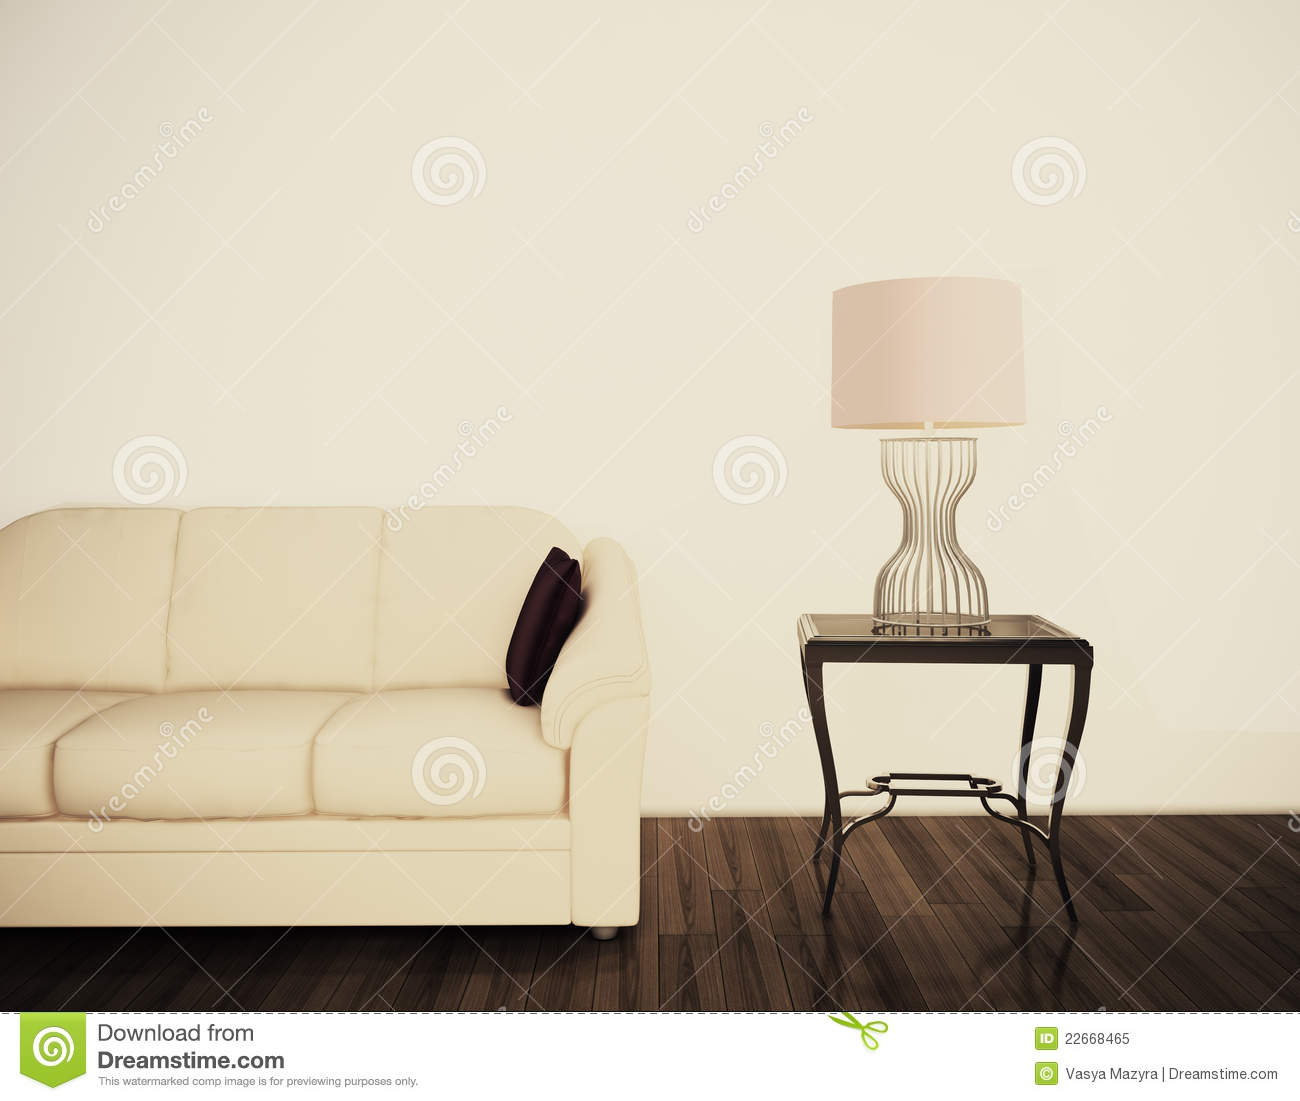 Modern comfortable interior with 3d rendering royalty free stock photo image 22668465 - Comfy interiors ...